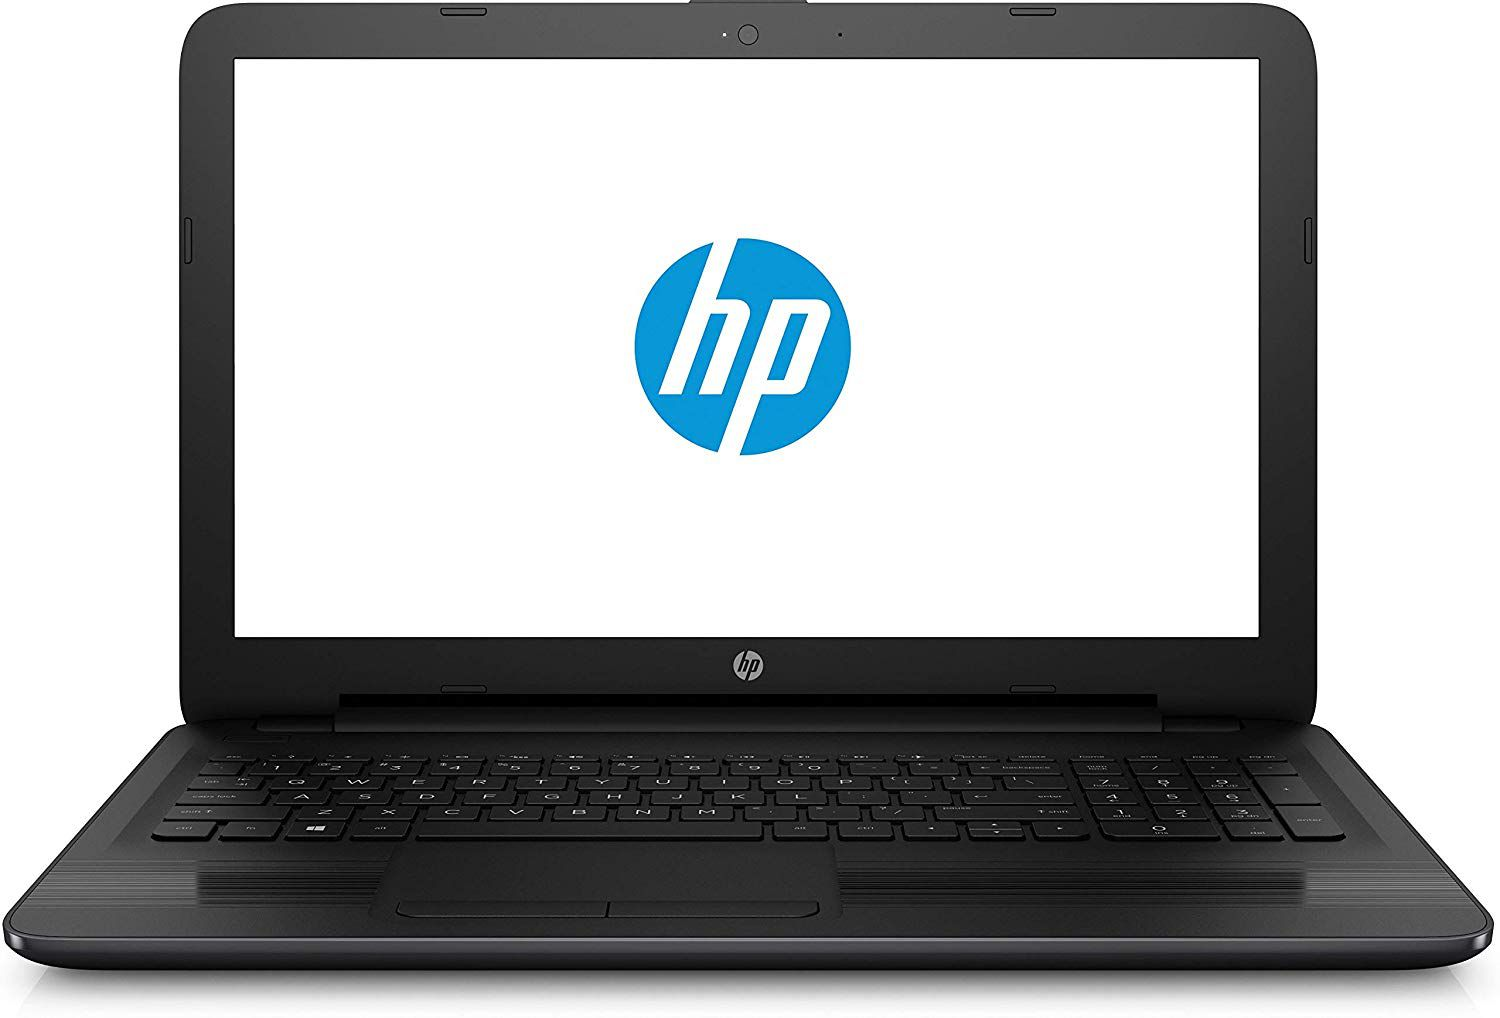 Notebook HP 250 G5 I5 2.3ghz 4GB 500GB tela 15.6